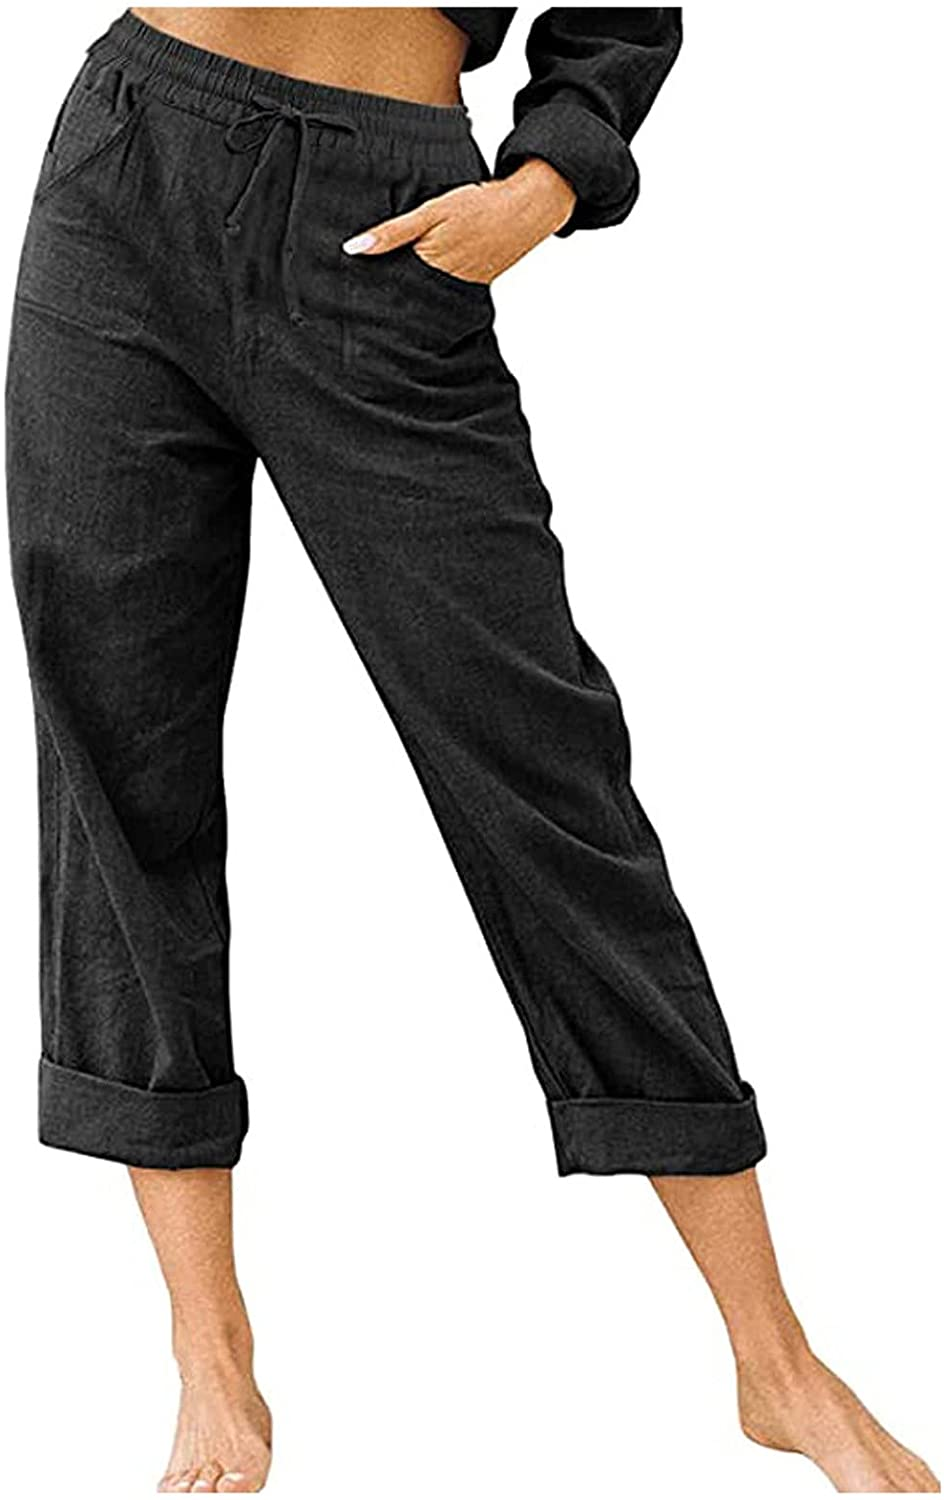 Misaky Women's Cotton And Linen High Waist Pants Solid Color Pants Casual Cropped Trousers